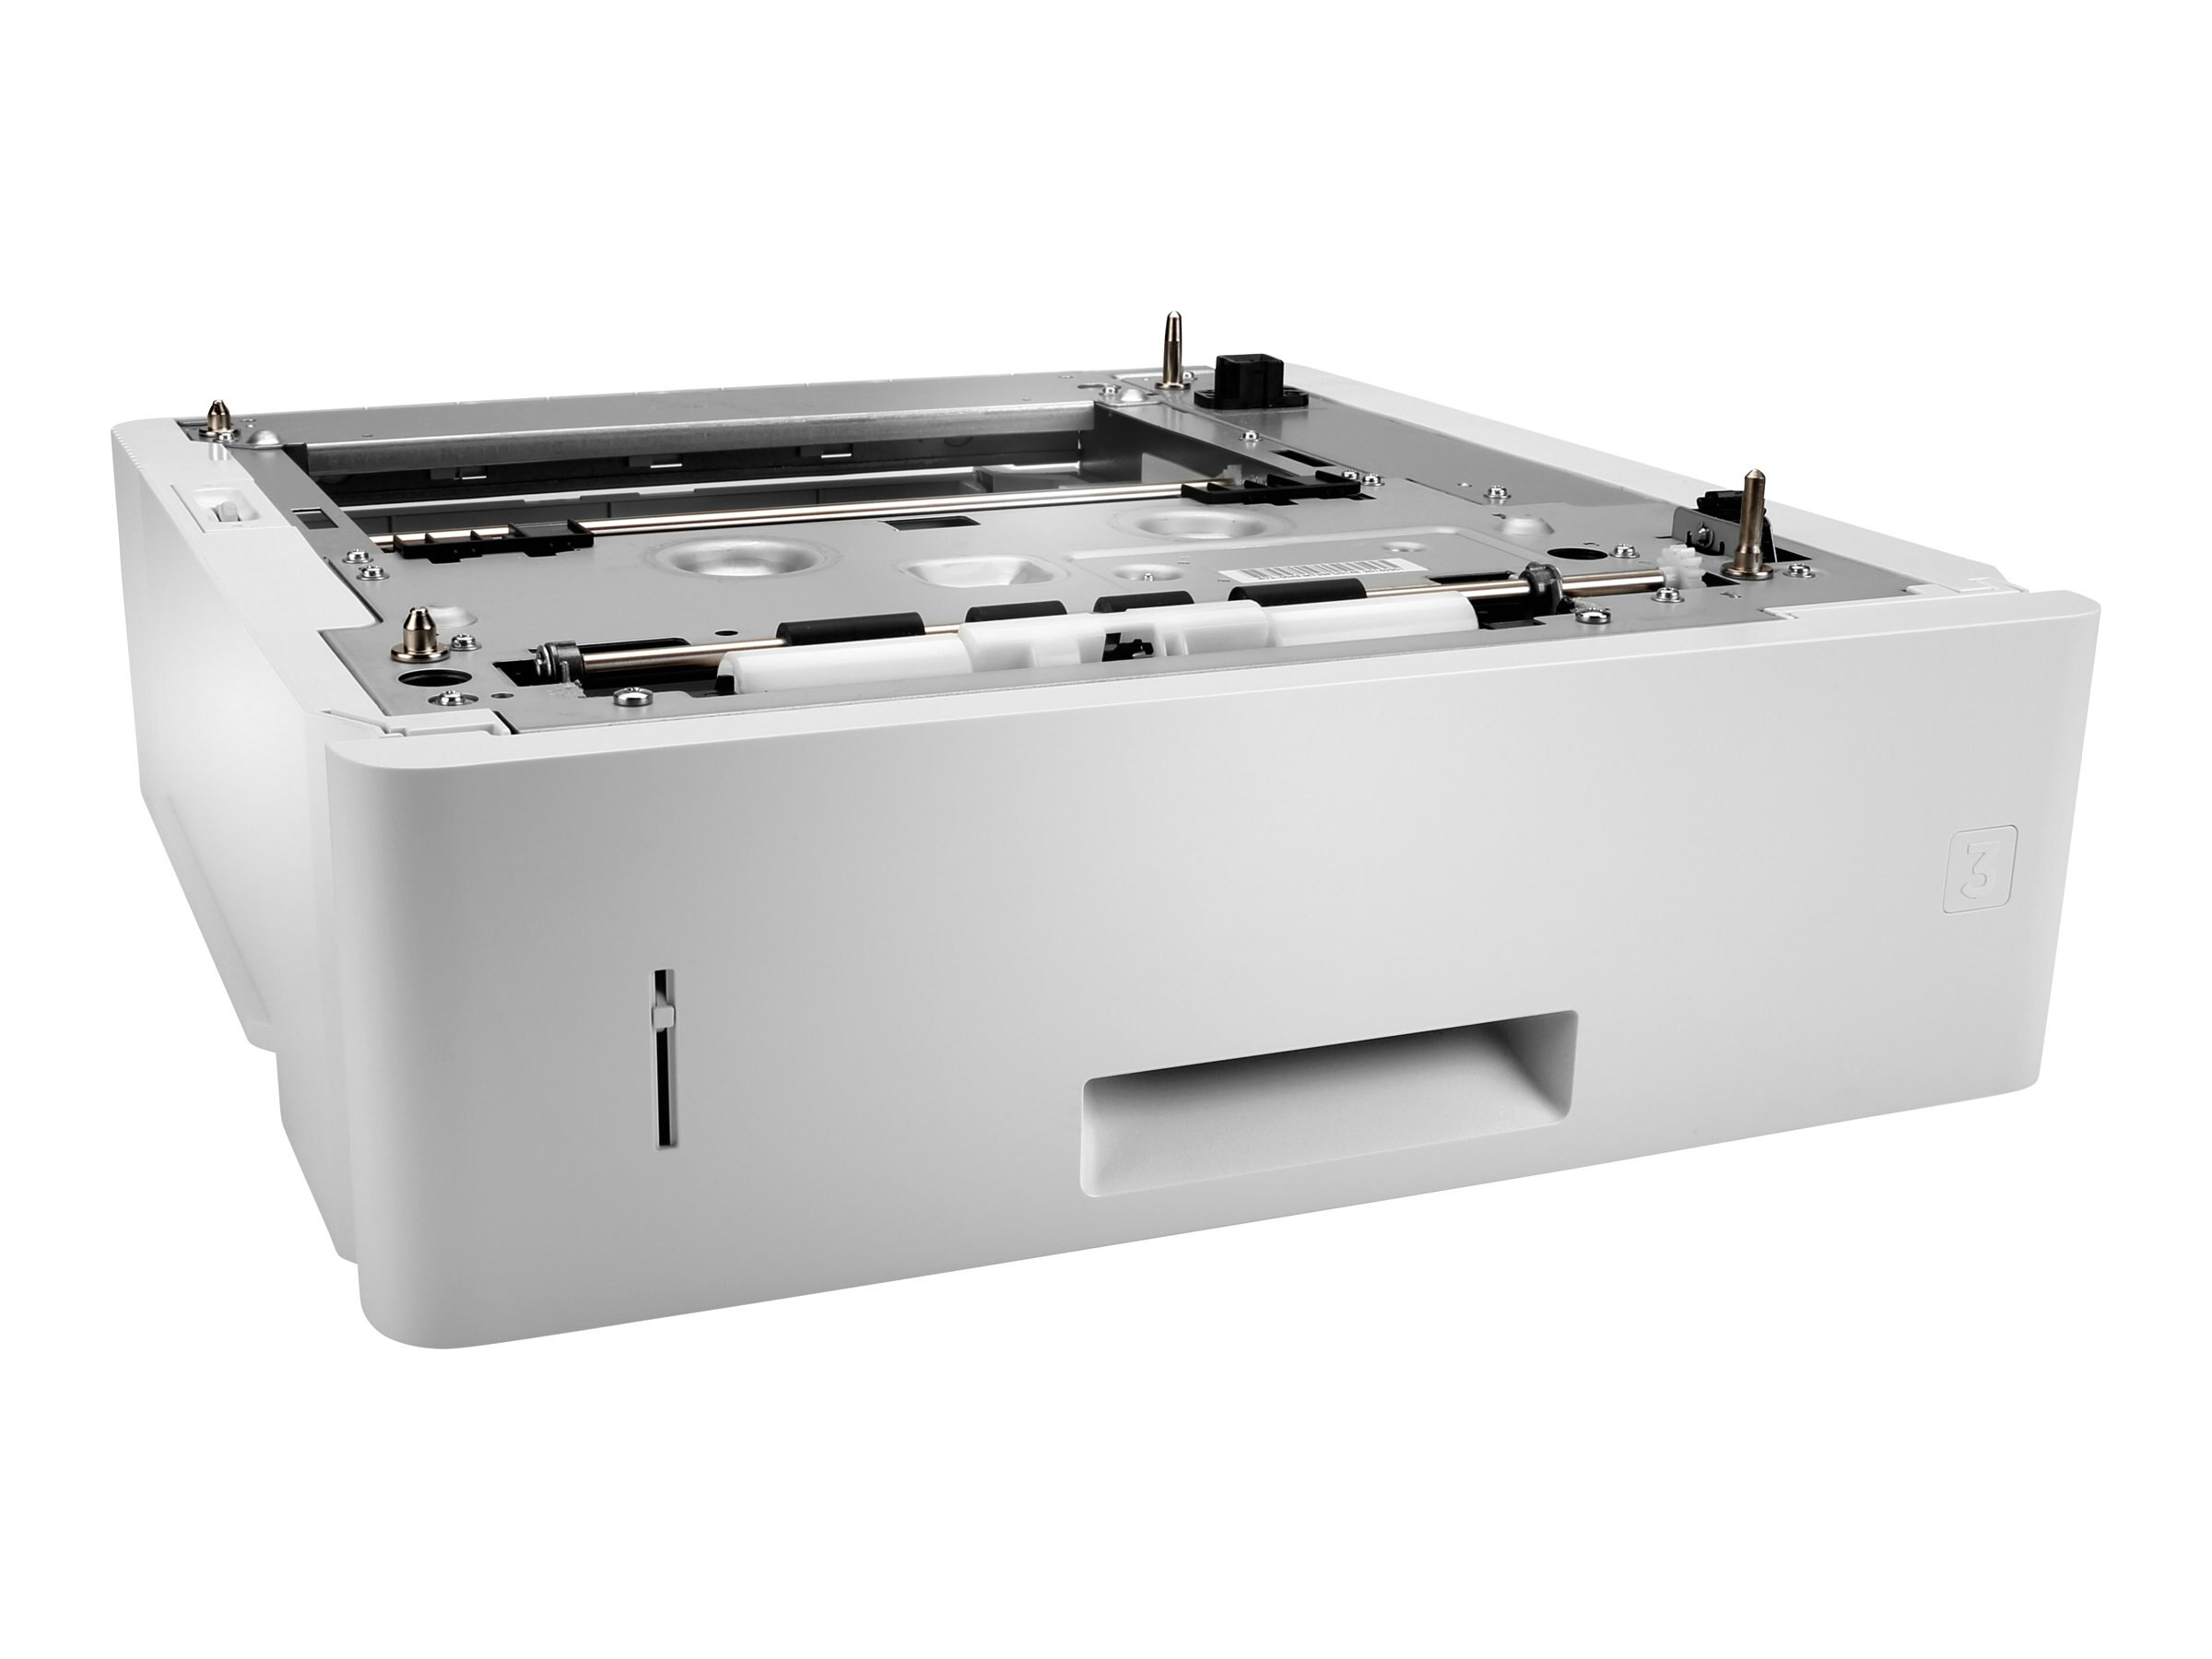 HP LaserJet 500-Sheet Input Tray Feeder for HP LaserJet M604, M605 & M606 Series